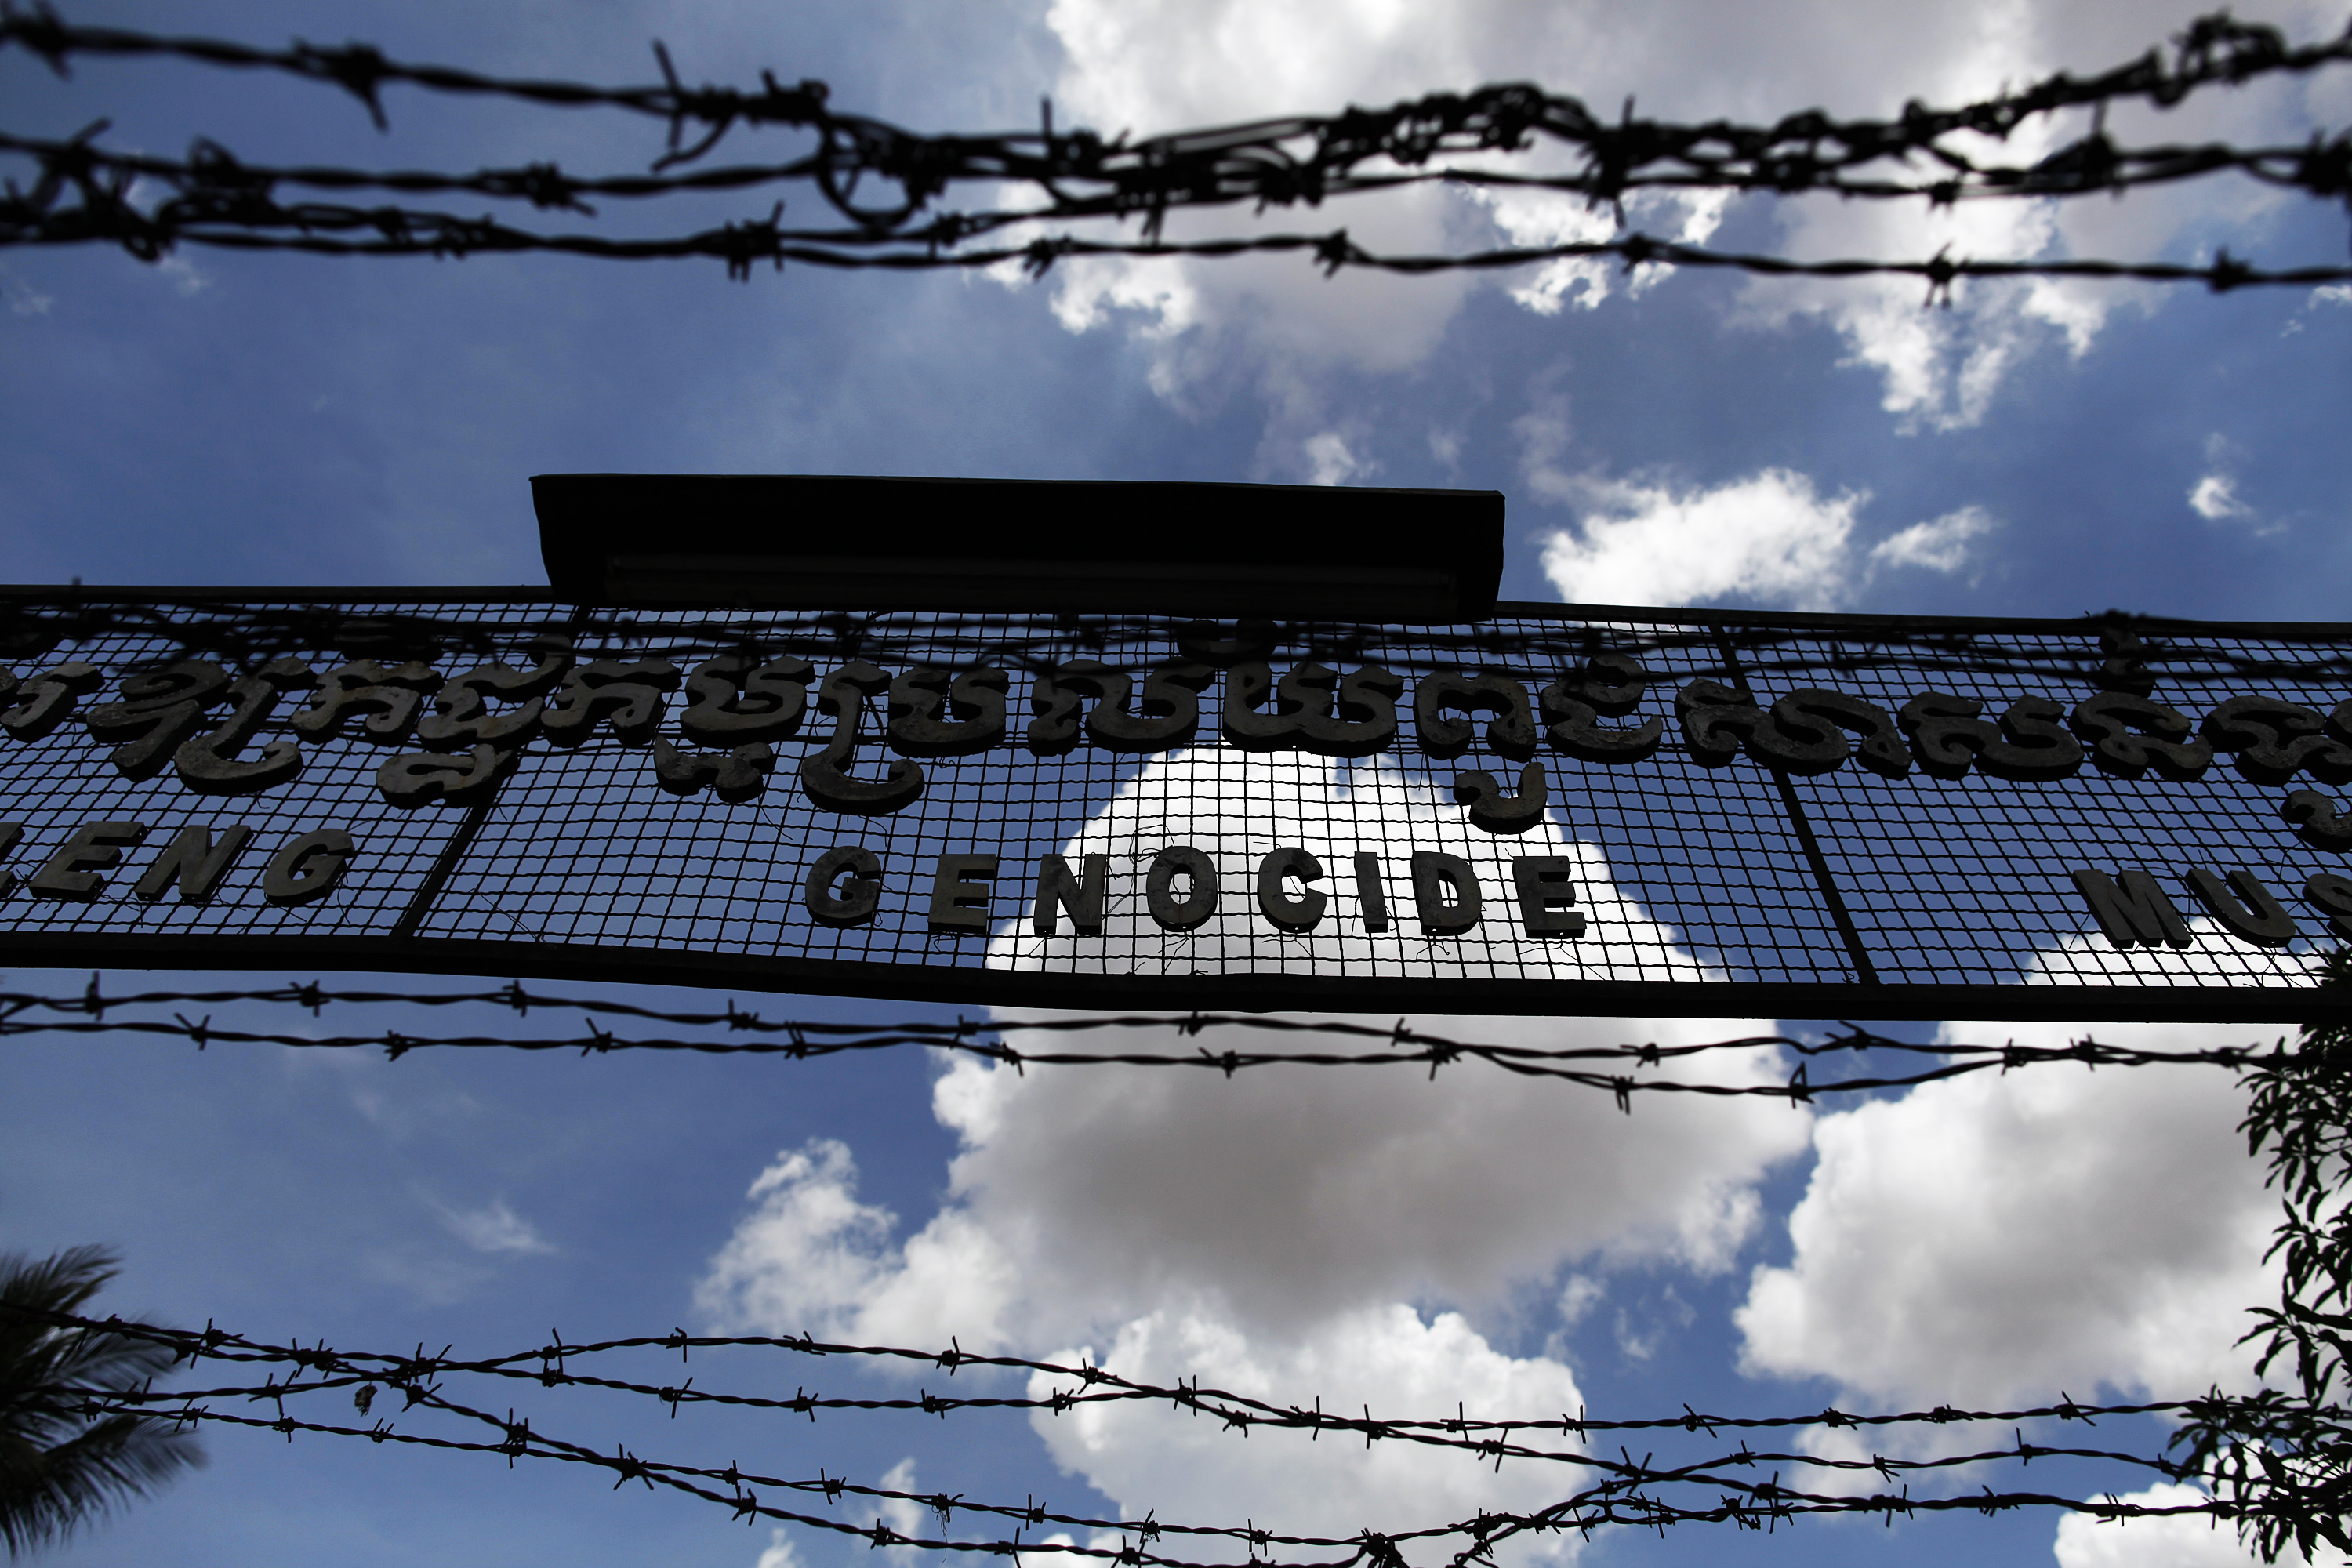 The sign above the entrance of Tuol Sleng Genocide Museum, also known as the notorious security prison S-21, is seen through razor wire in Phnom Penh July 4, 2010.